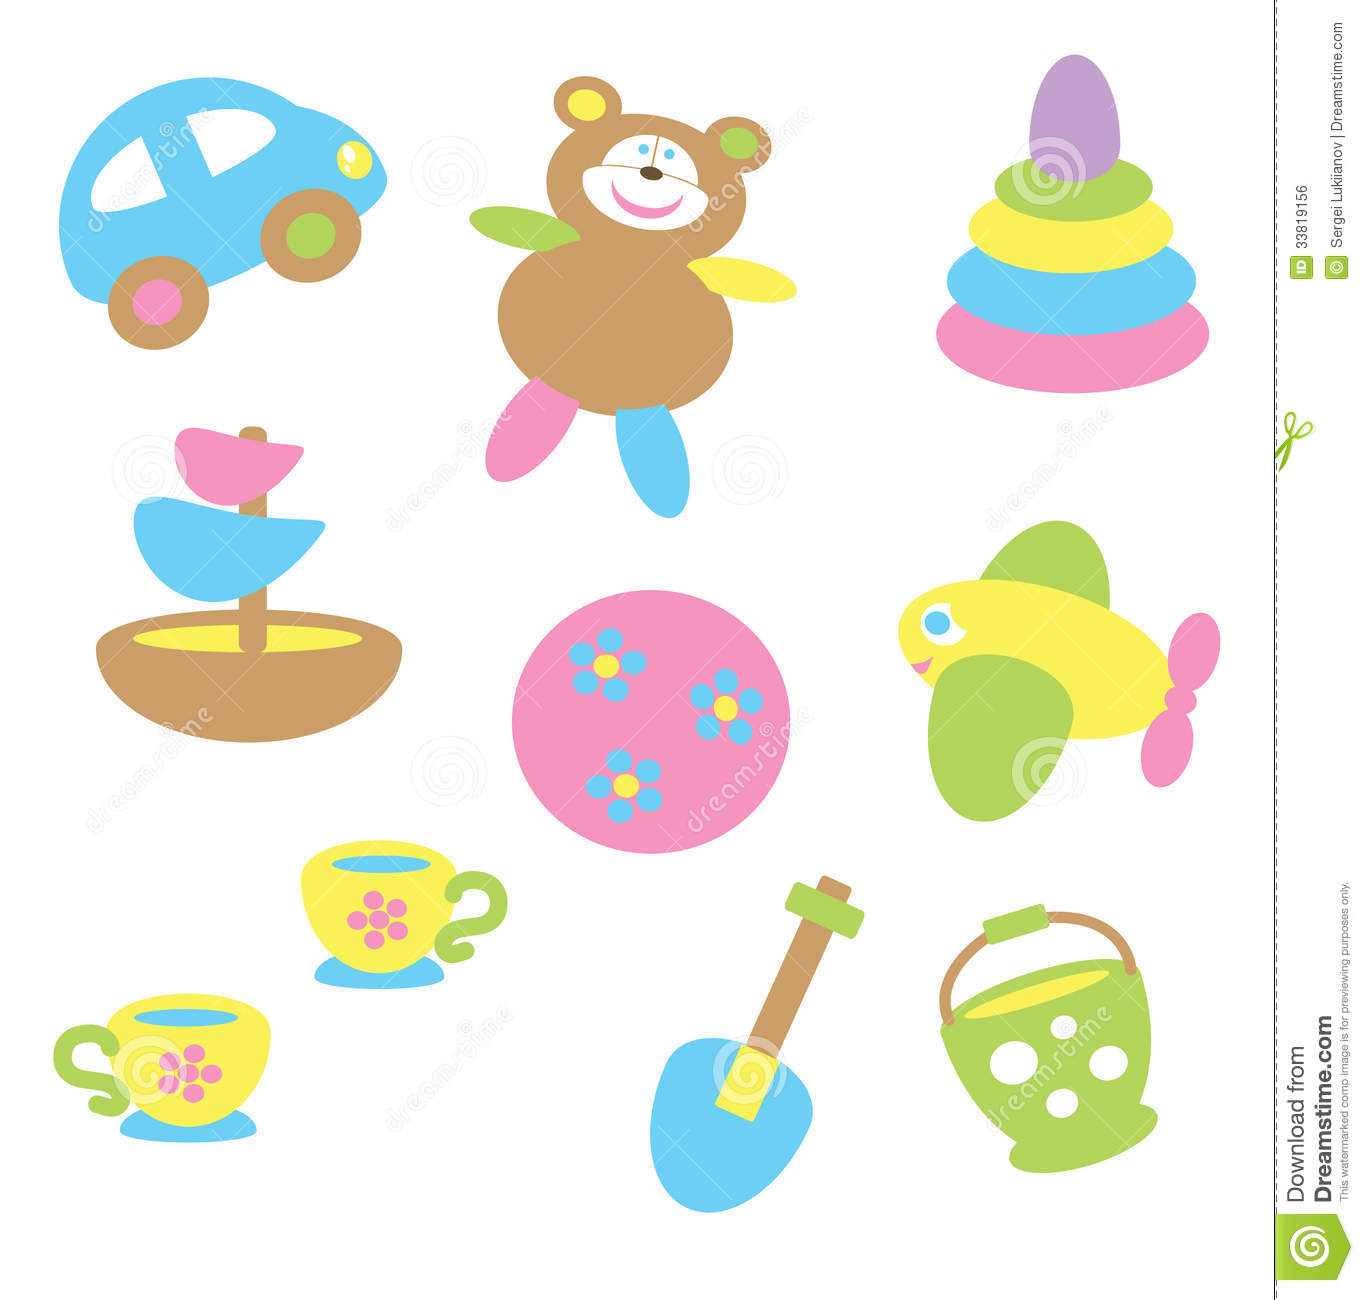 Toy Food Clip Art : Baby toys in pastel tone royalty free stock image